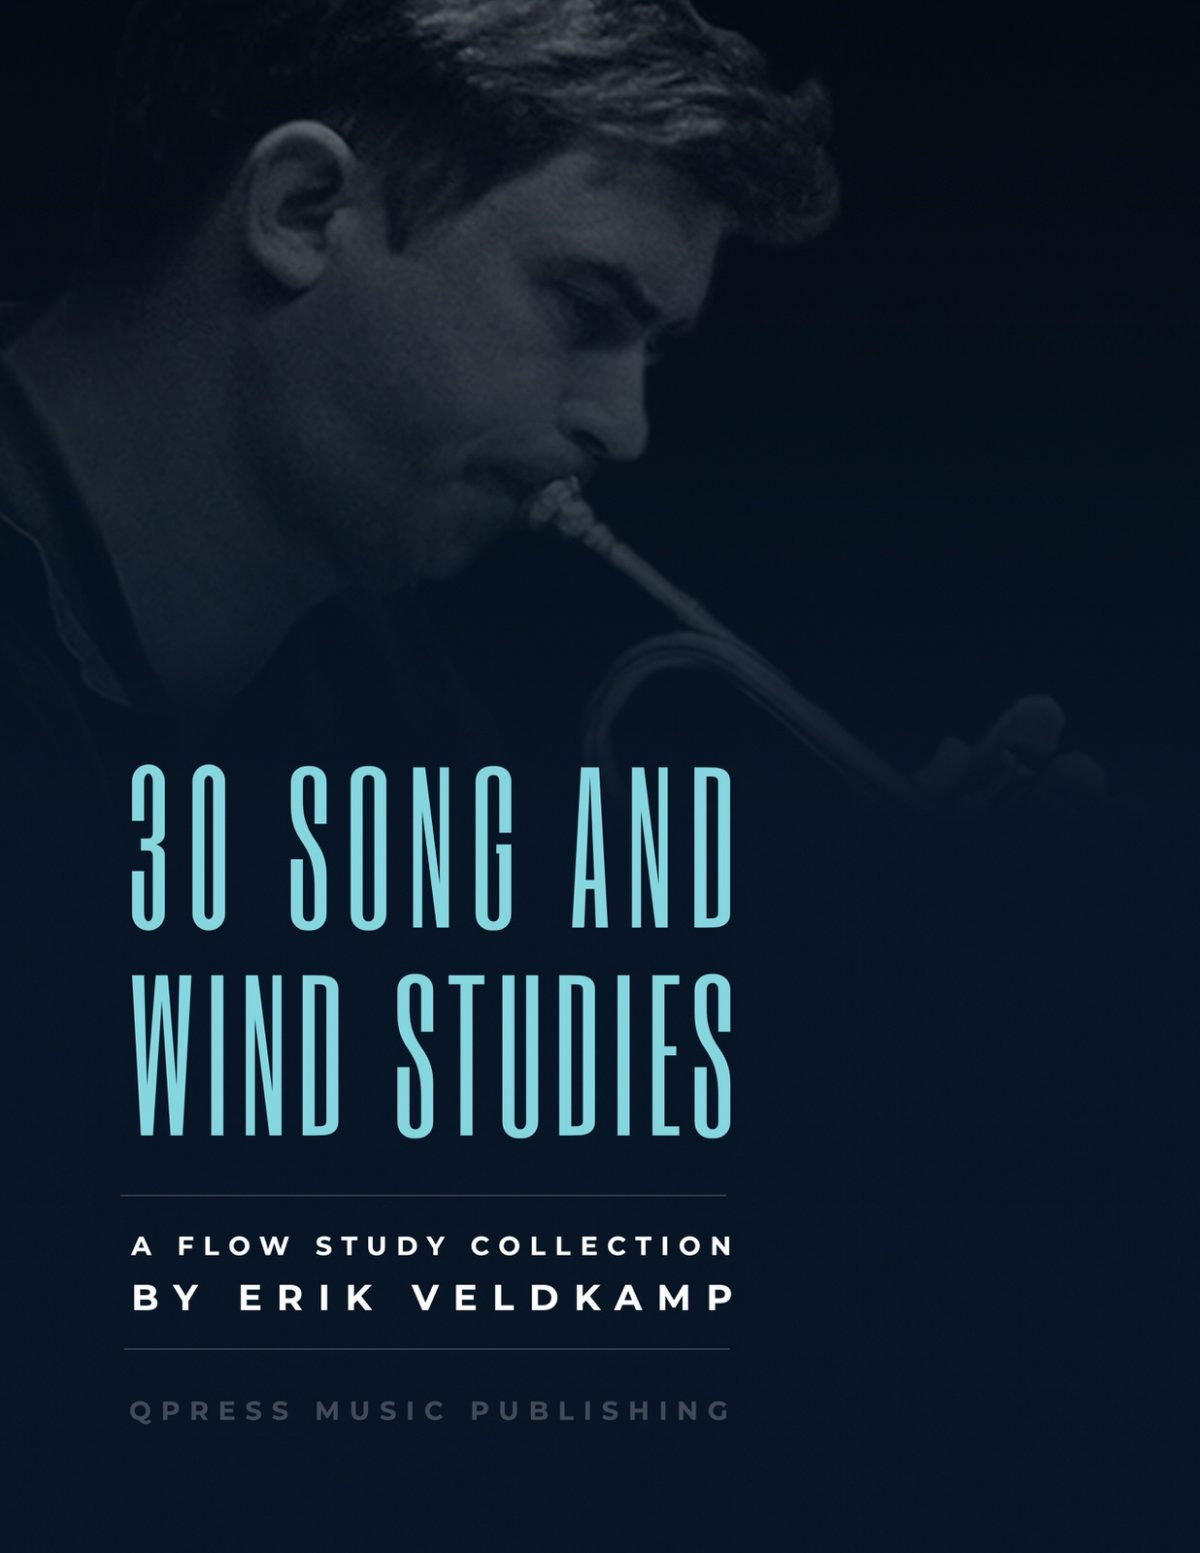 Erik Veldkamp, 30 Song & Wind Studies Book Cover